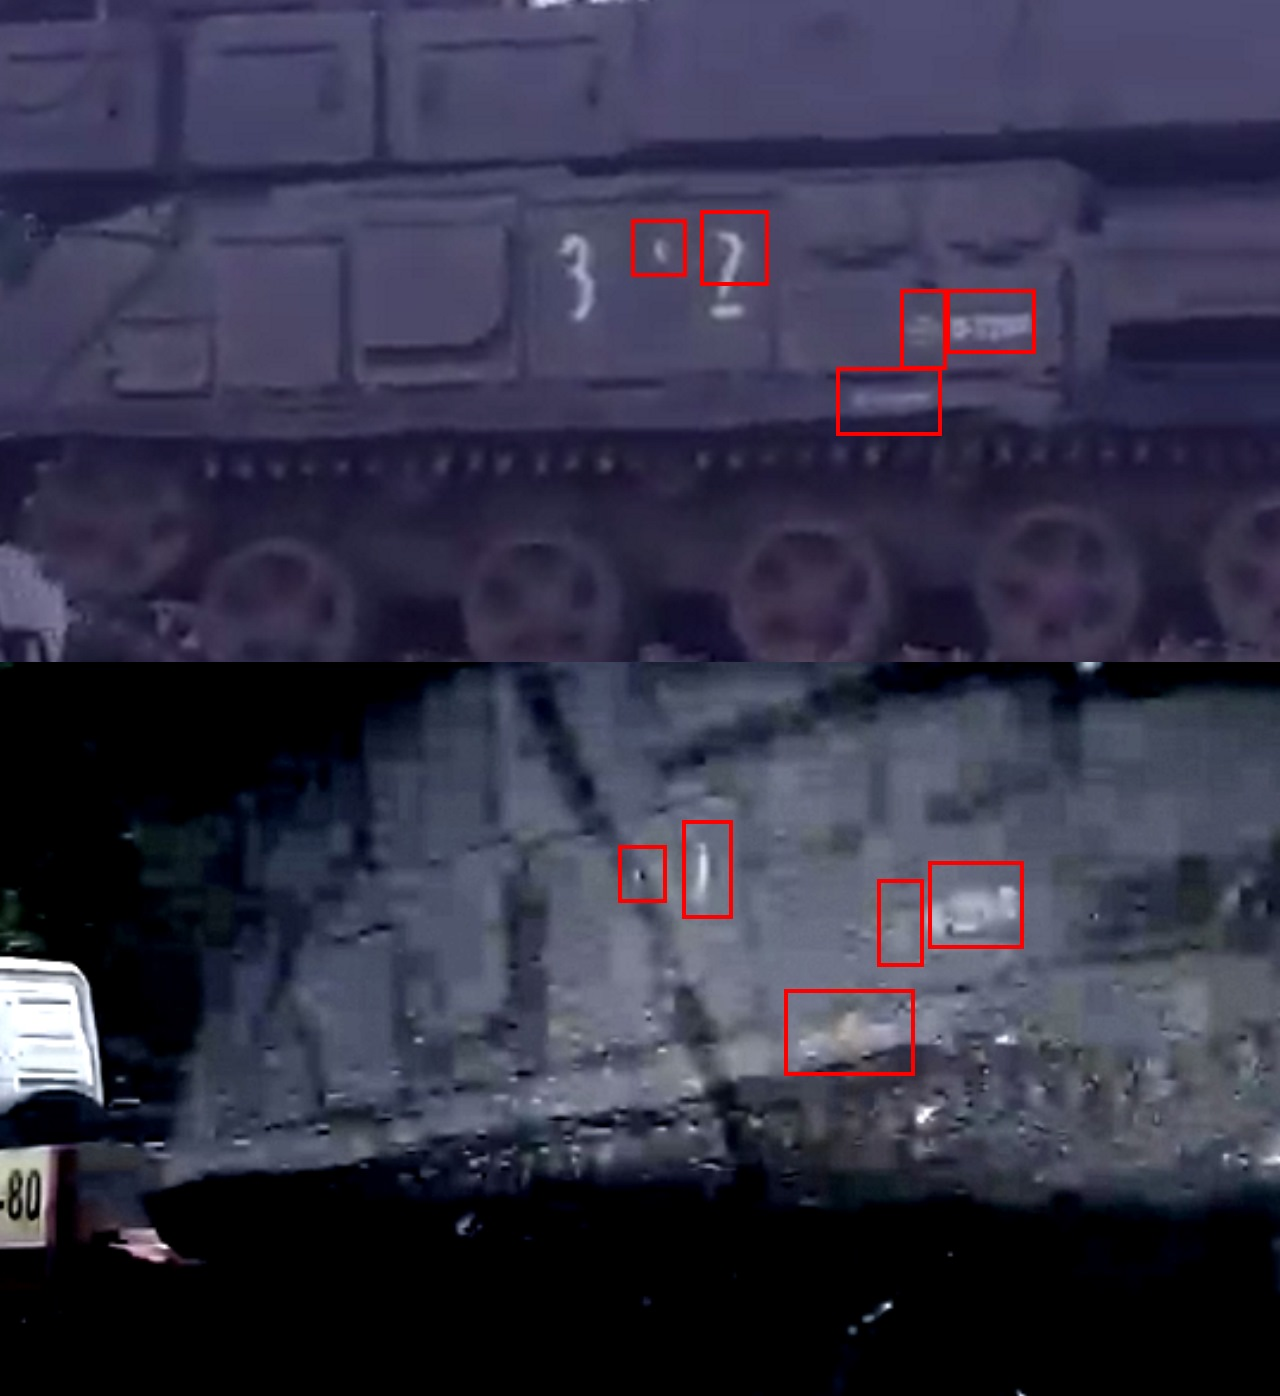 The top still is from footage of the convoy in Russia, the bottom from the Paris Match photograph [Source] with the matching markings highlighted